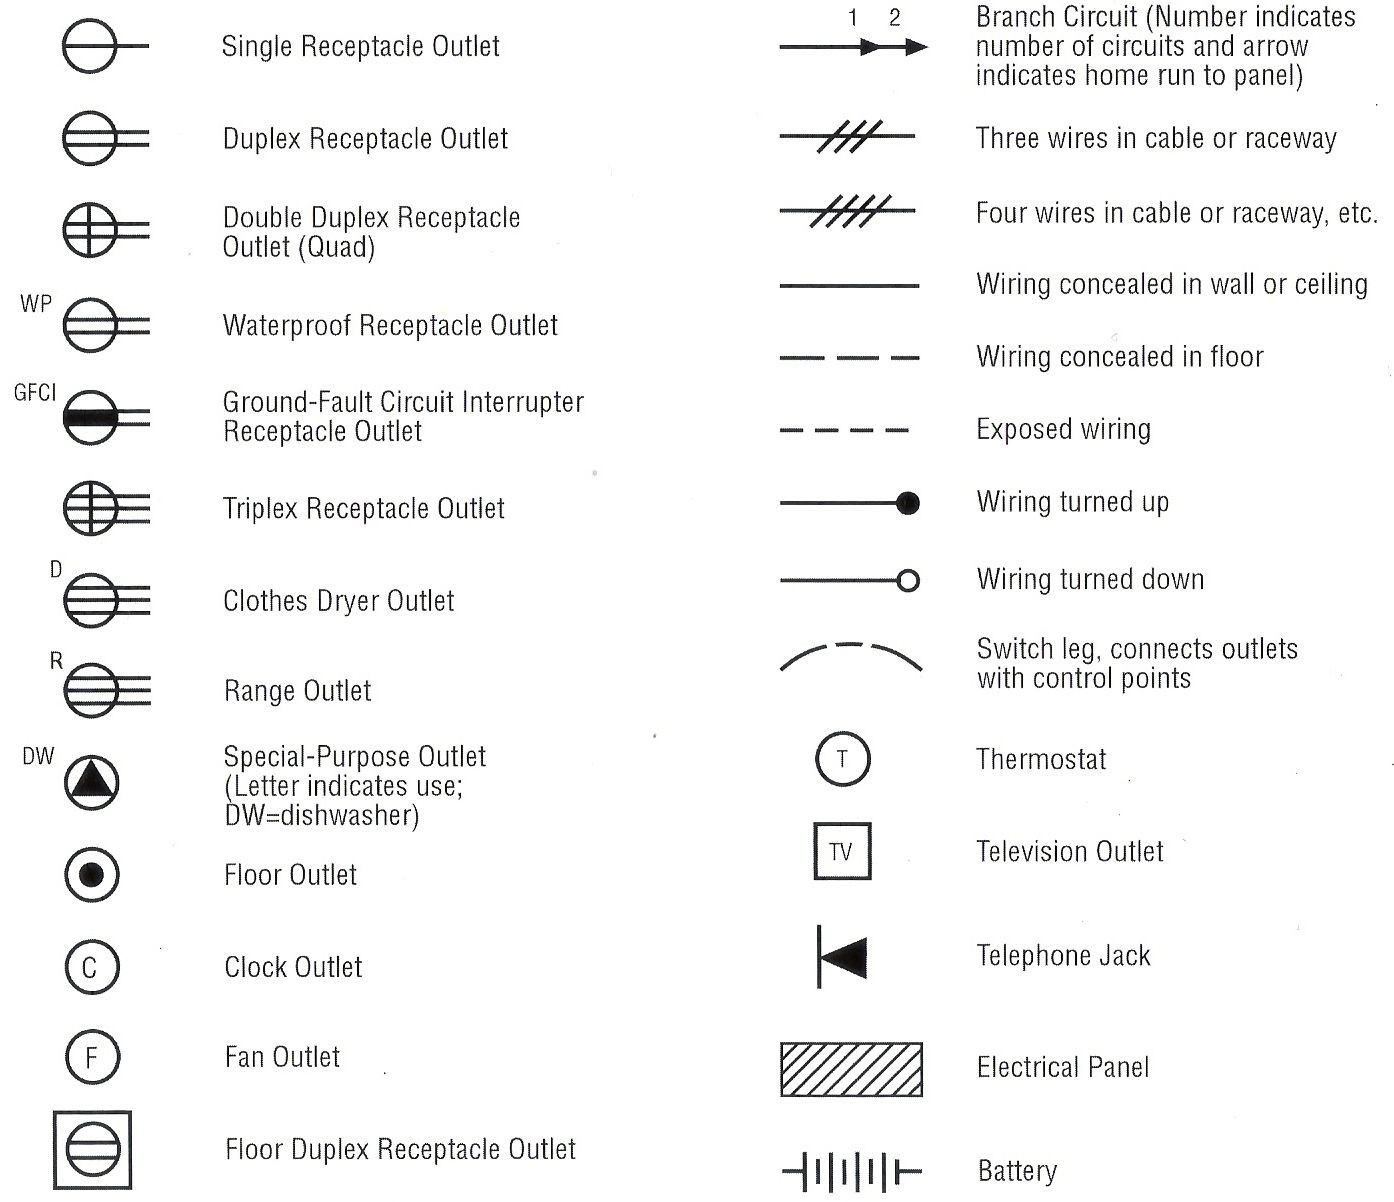 Dictionary of electrical terms and Electrical Symbols